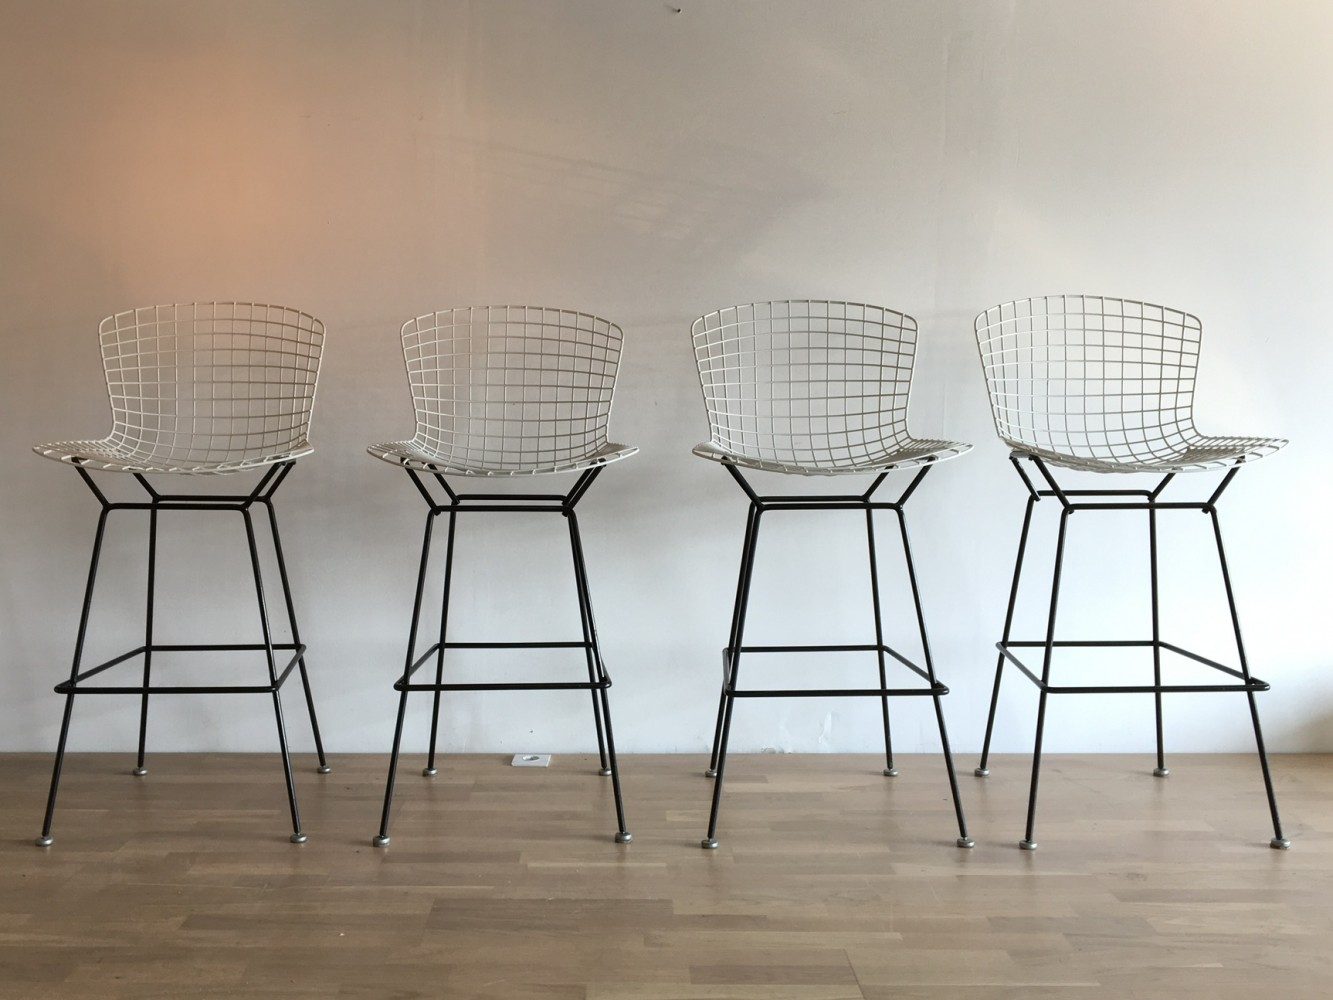 4 x tabouret stool by harry bertoia for knoll 1950s 60097. Black Bedroom Furniture Sets. Home Design Ideas